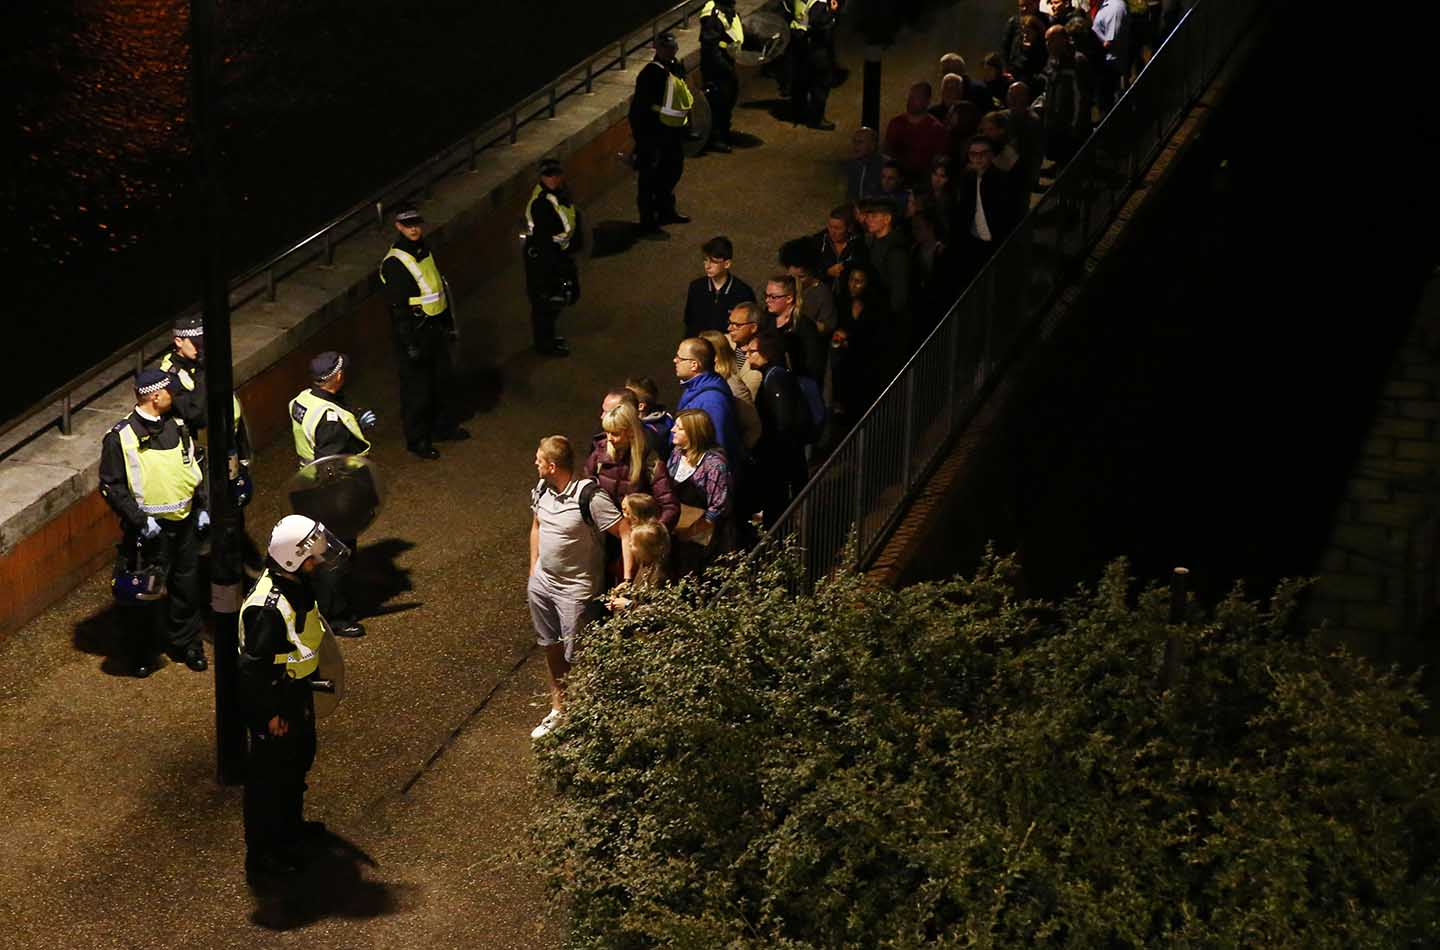 Police officers stand with people evacuated from the area after an incident near London Bridge in London